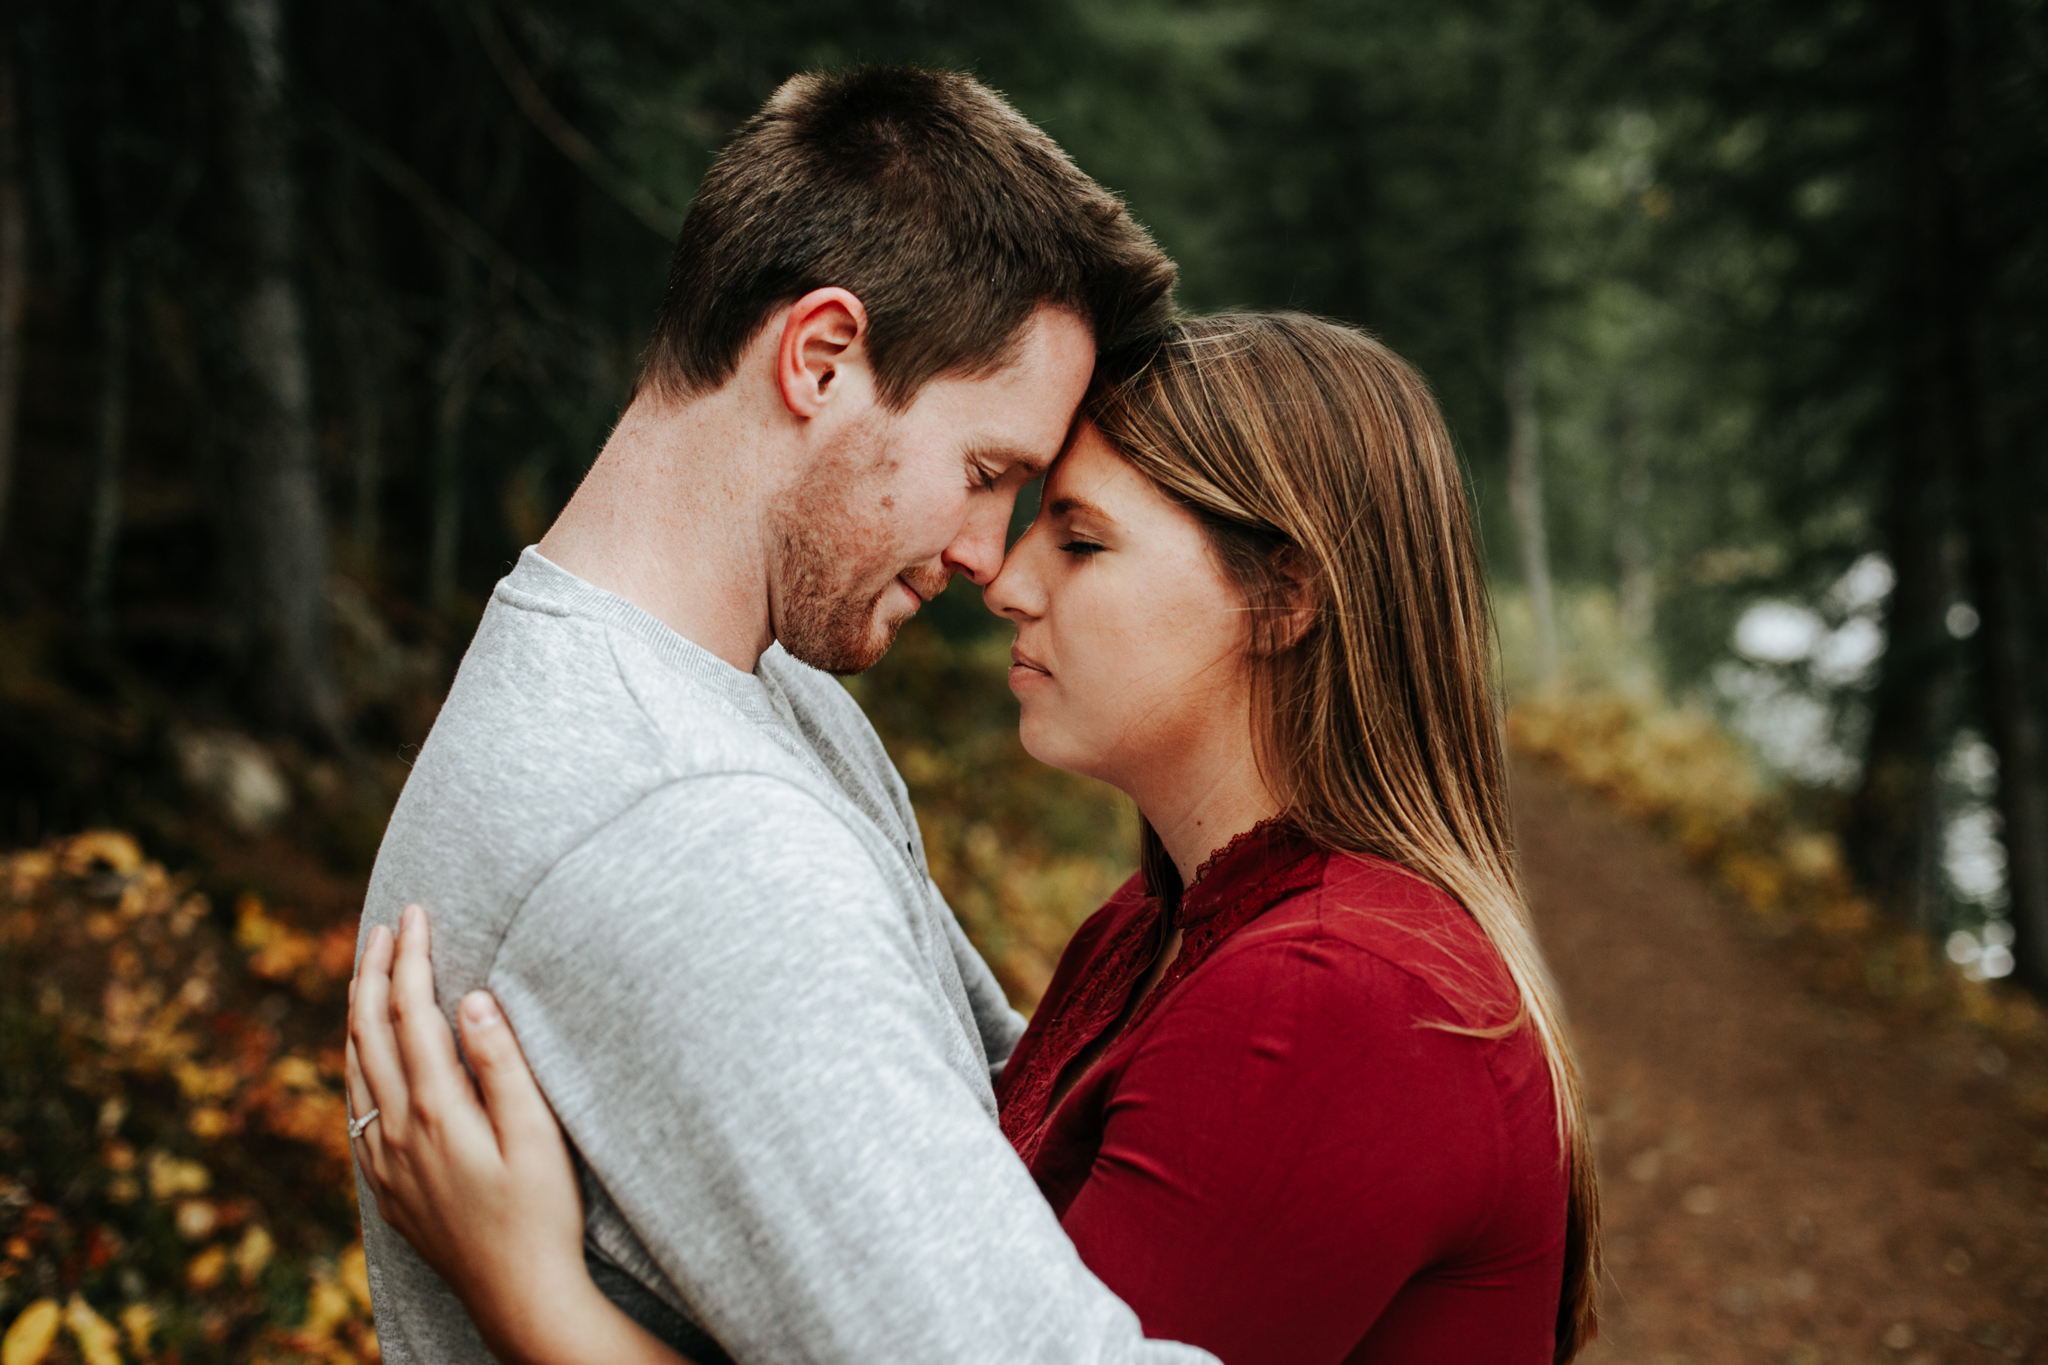 lethbridge-photographer-love-and-be-loved-photography-crowsnest-pass-engagement-andi-philip-picture-image-photo--46.jpg